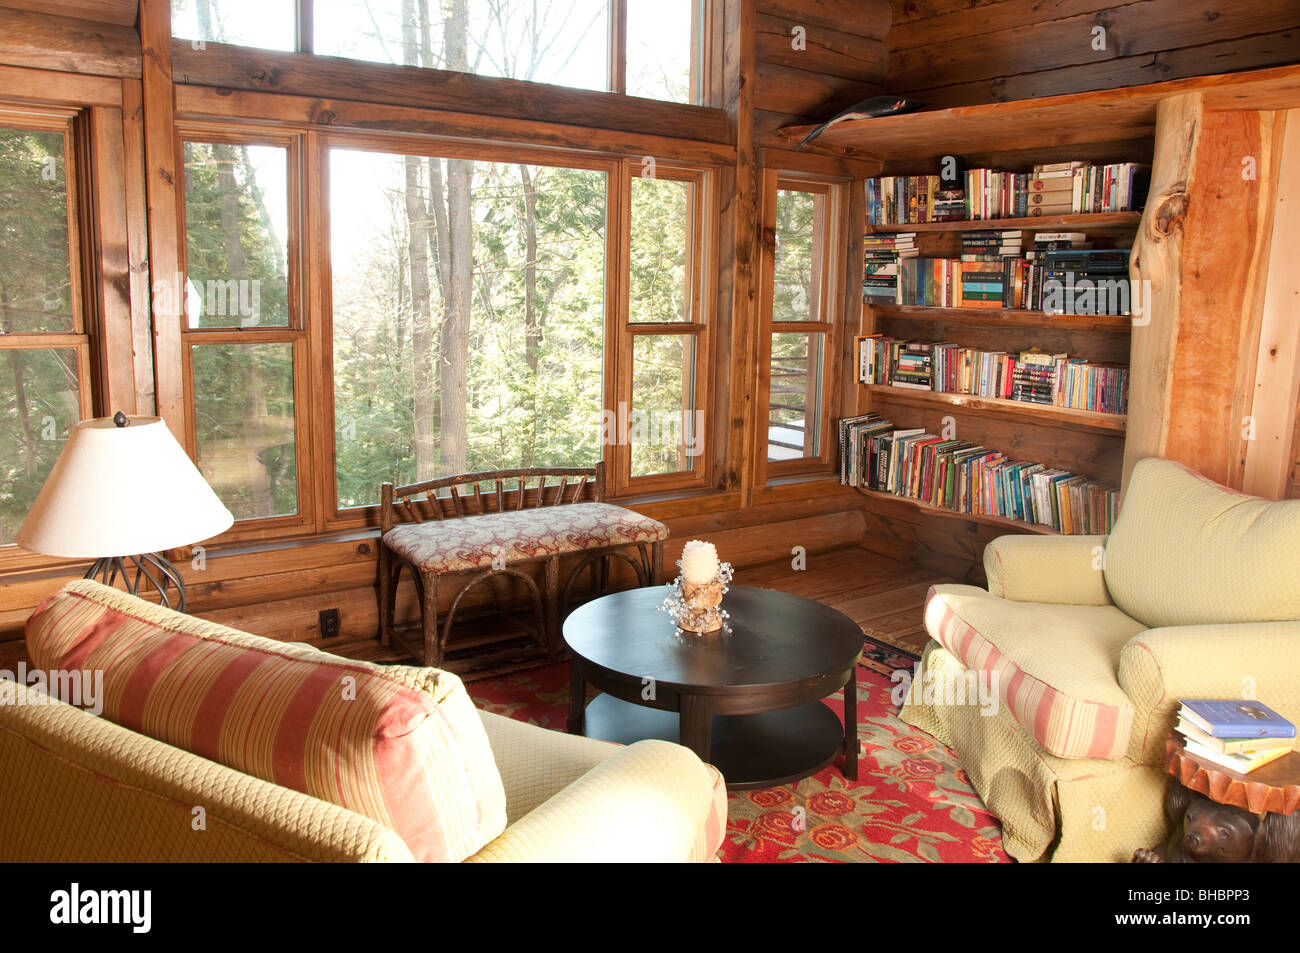 Comfortable Wood Elegant Country Home Setting Book Nook With Overstuffed  Chairs And Big Windows To View Outdoors